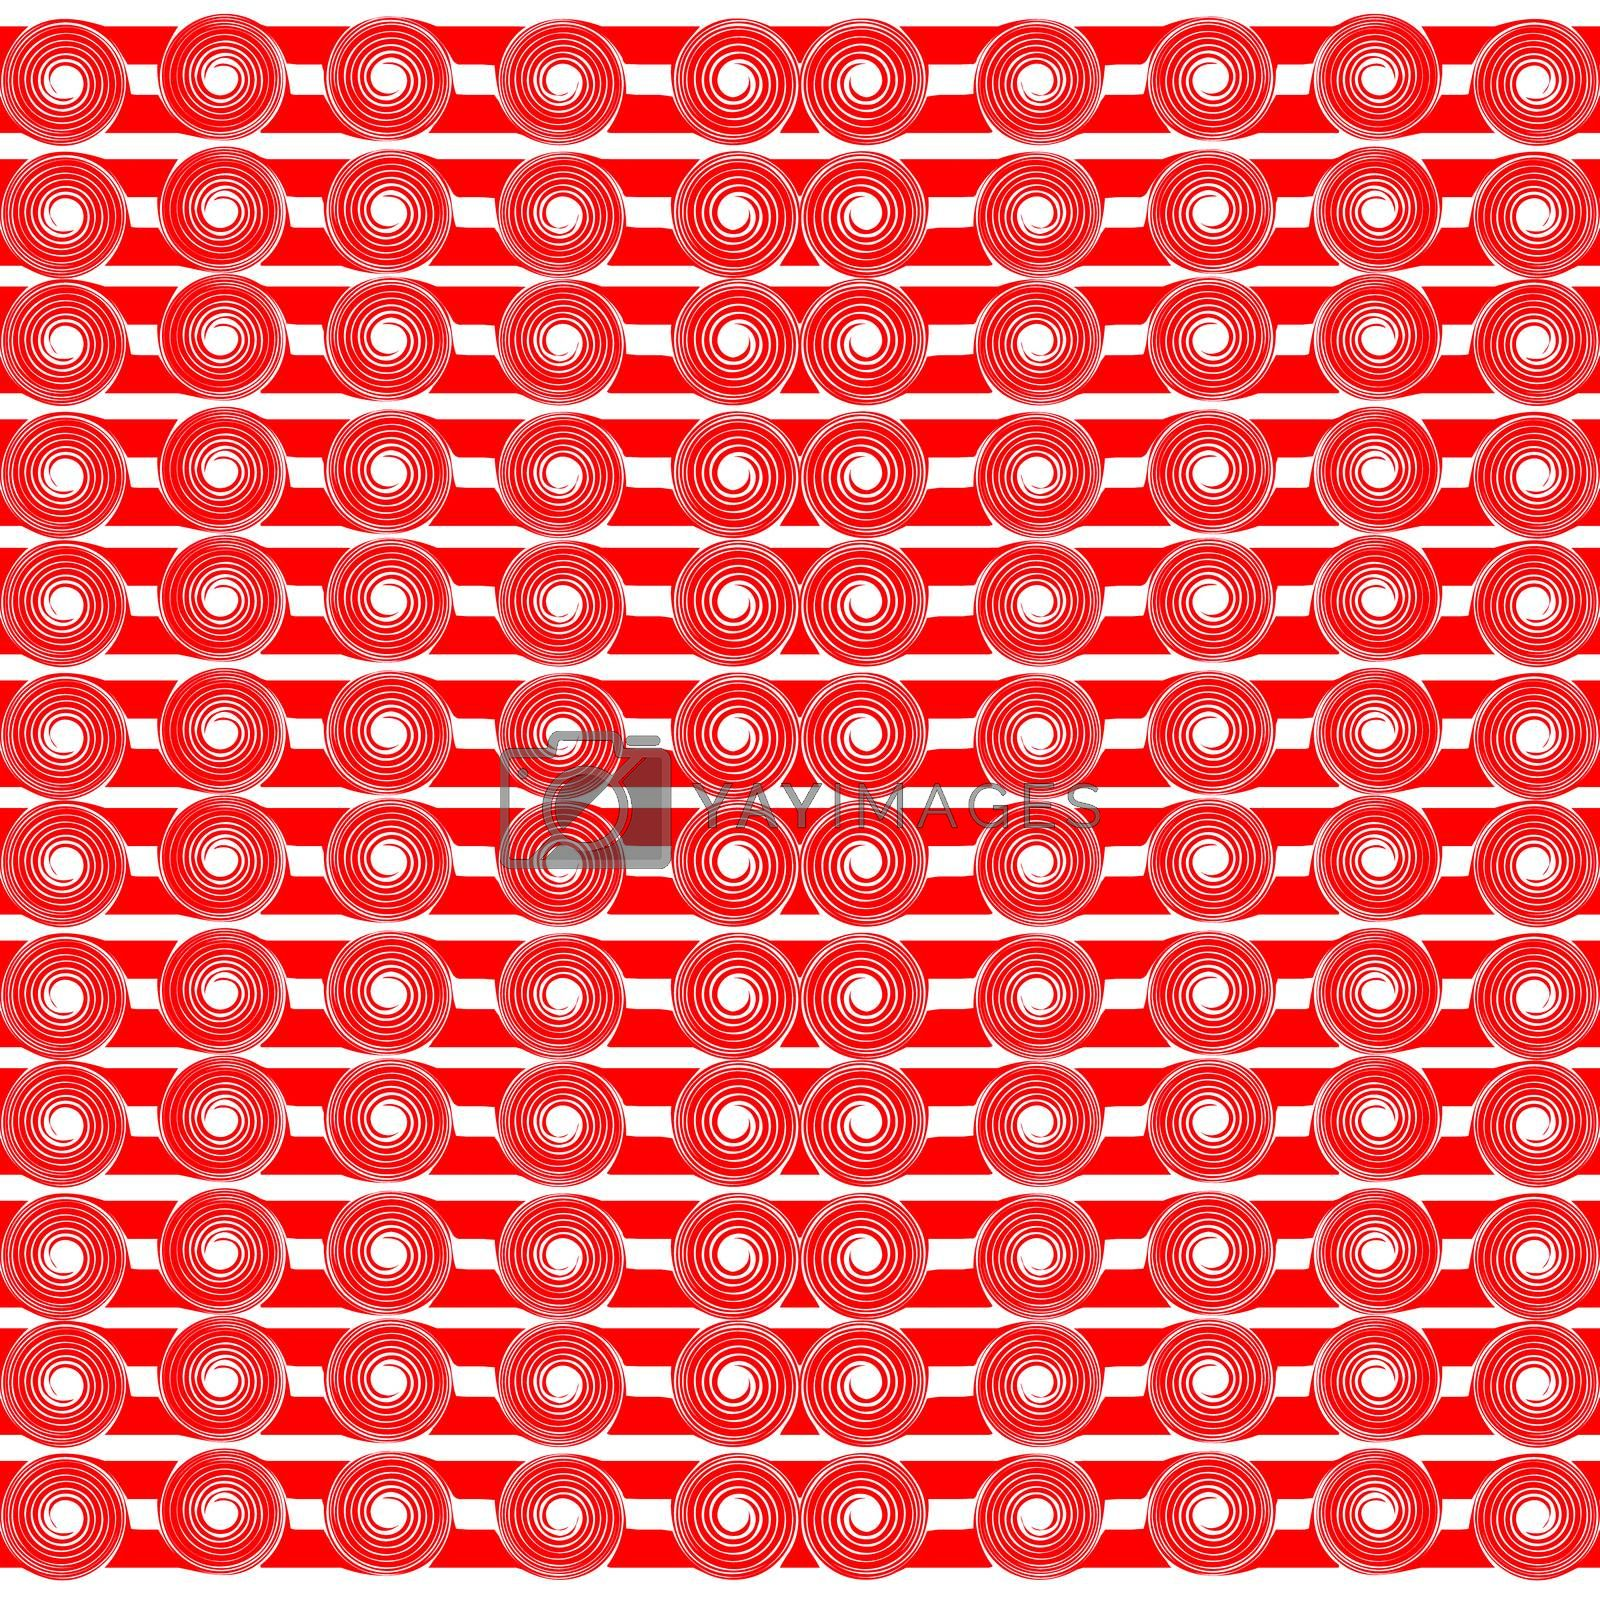 Red stripe pattern.For art texture or web design and vertical background.